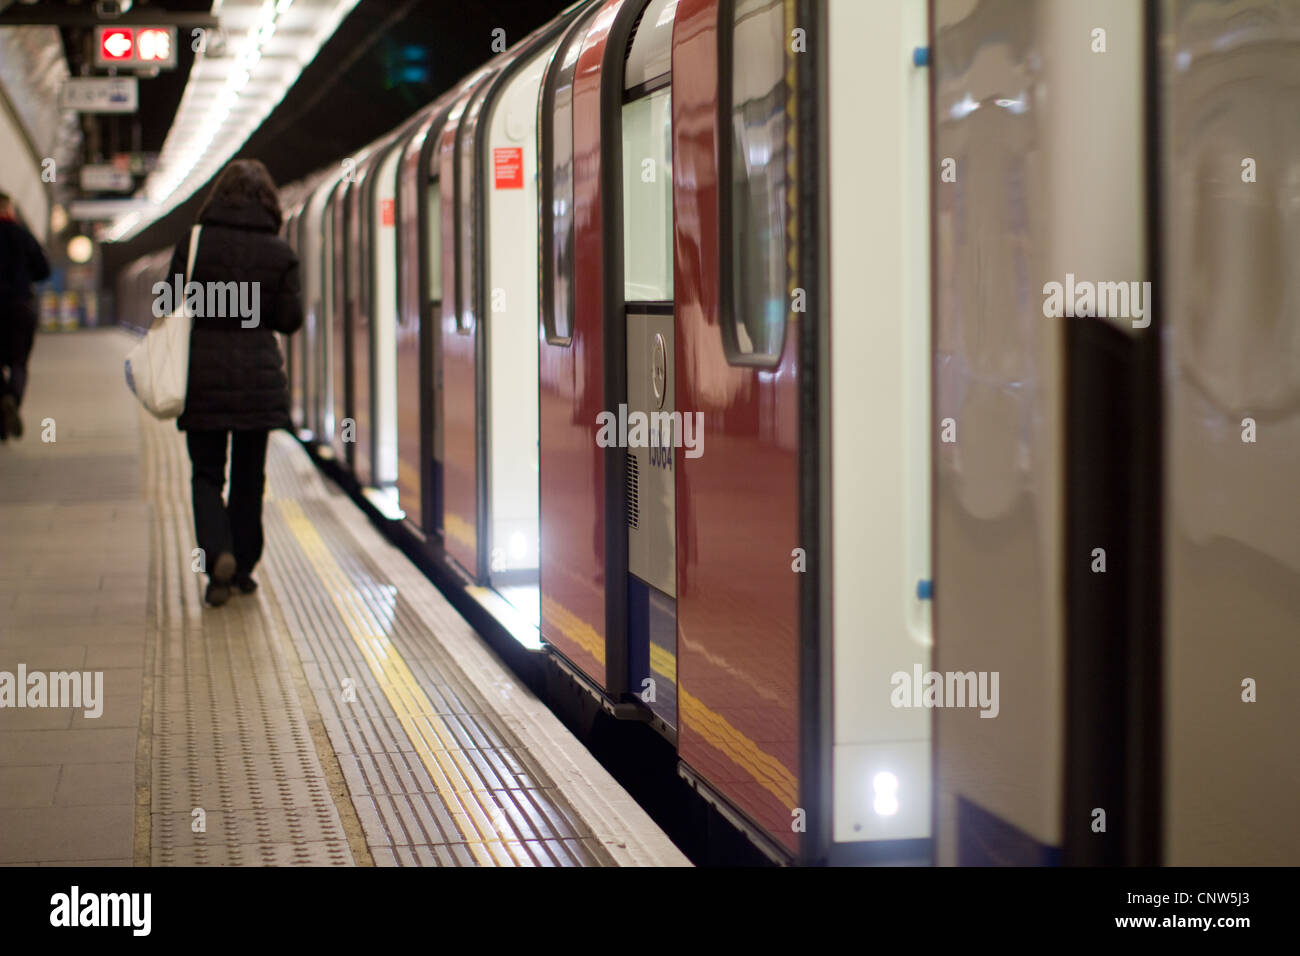 Réseau de métro de Londres, passagers monter sur le train sur la ligne Victoria Walthamstow Photo Stock